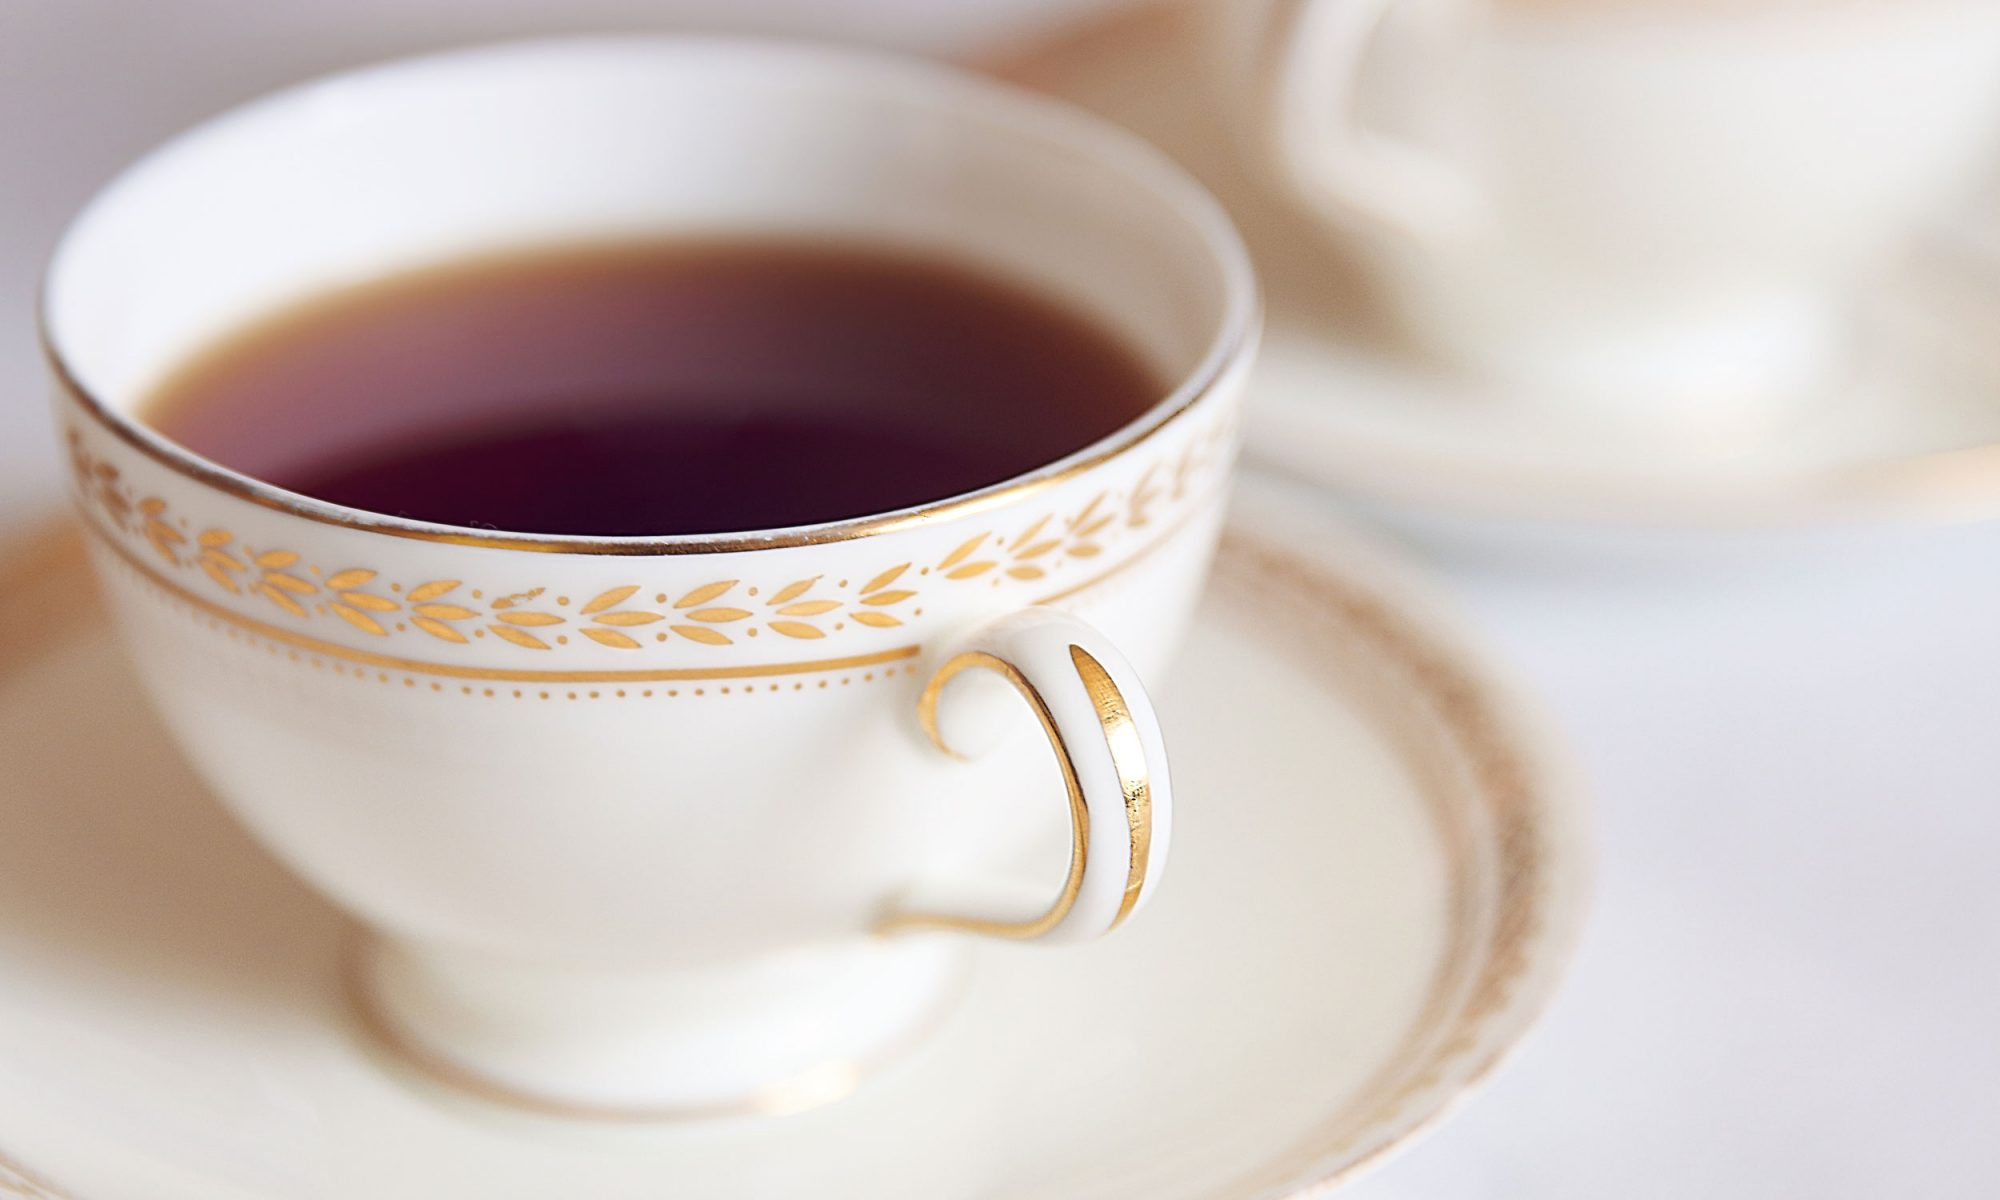 I Tried 7 English Breakfast Teas and Here's the Best One